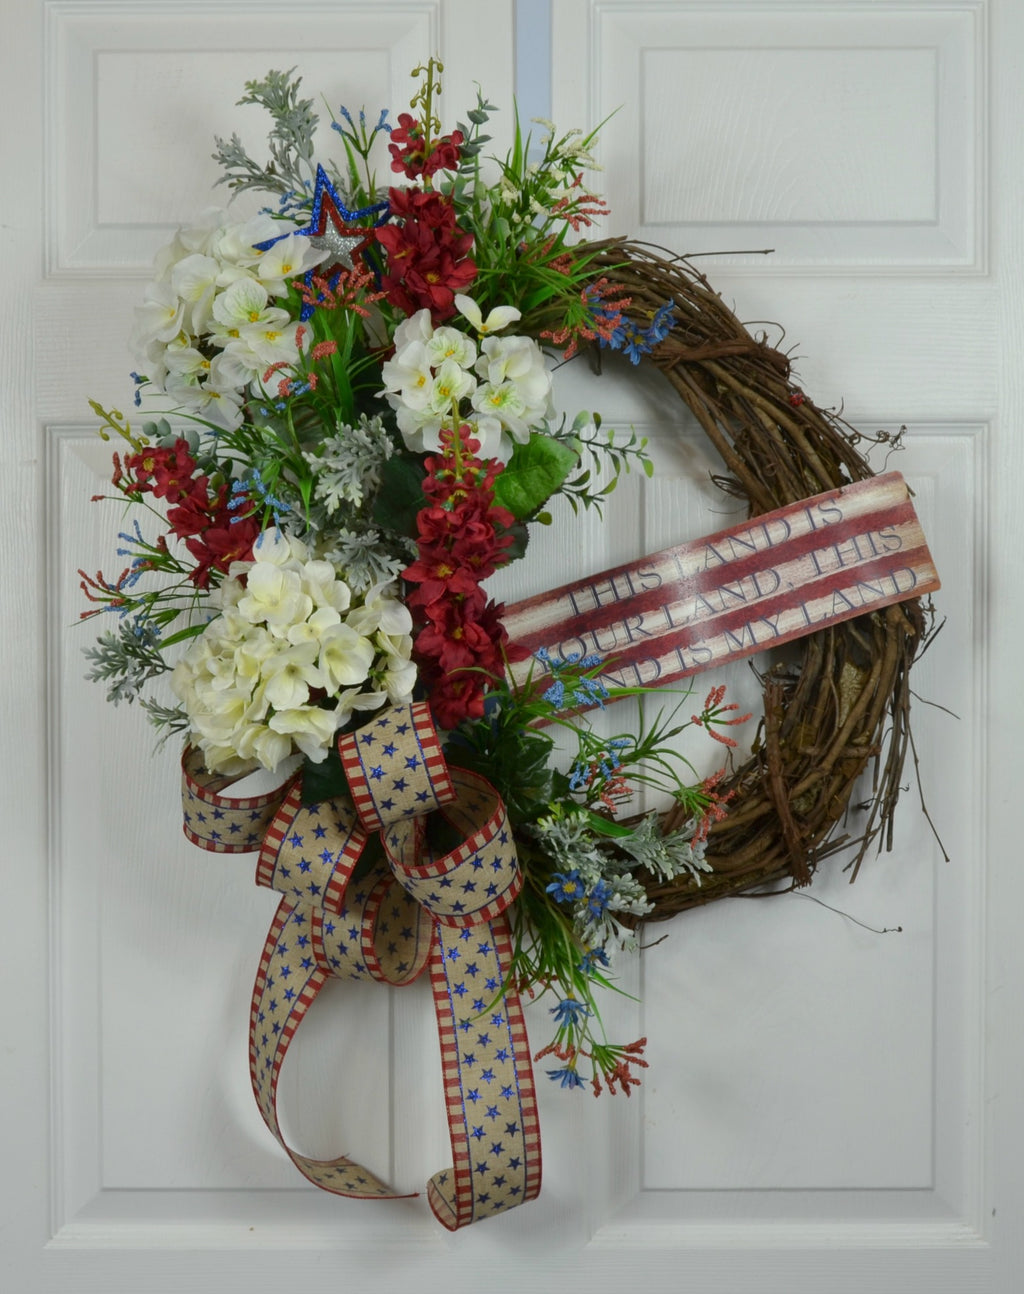 Patriotic 4th of July Wreath with This Land is your Land Sign